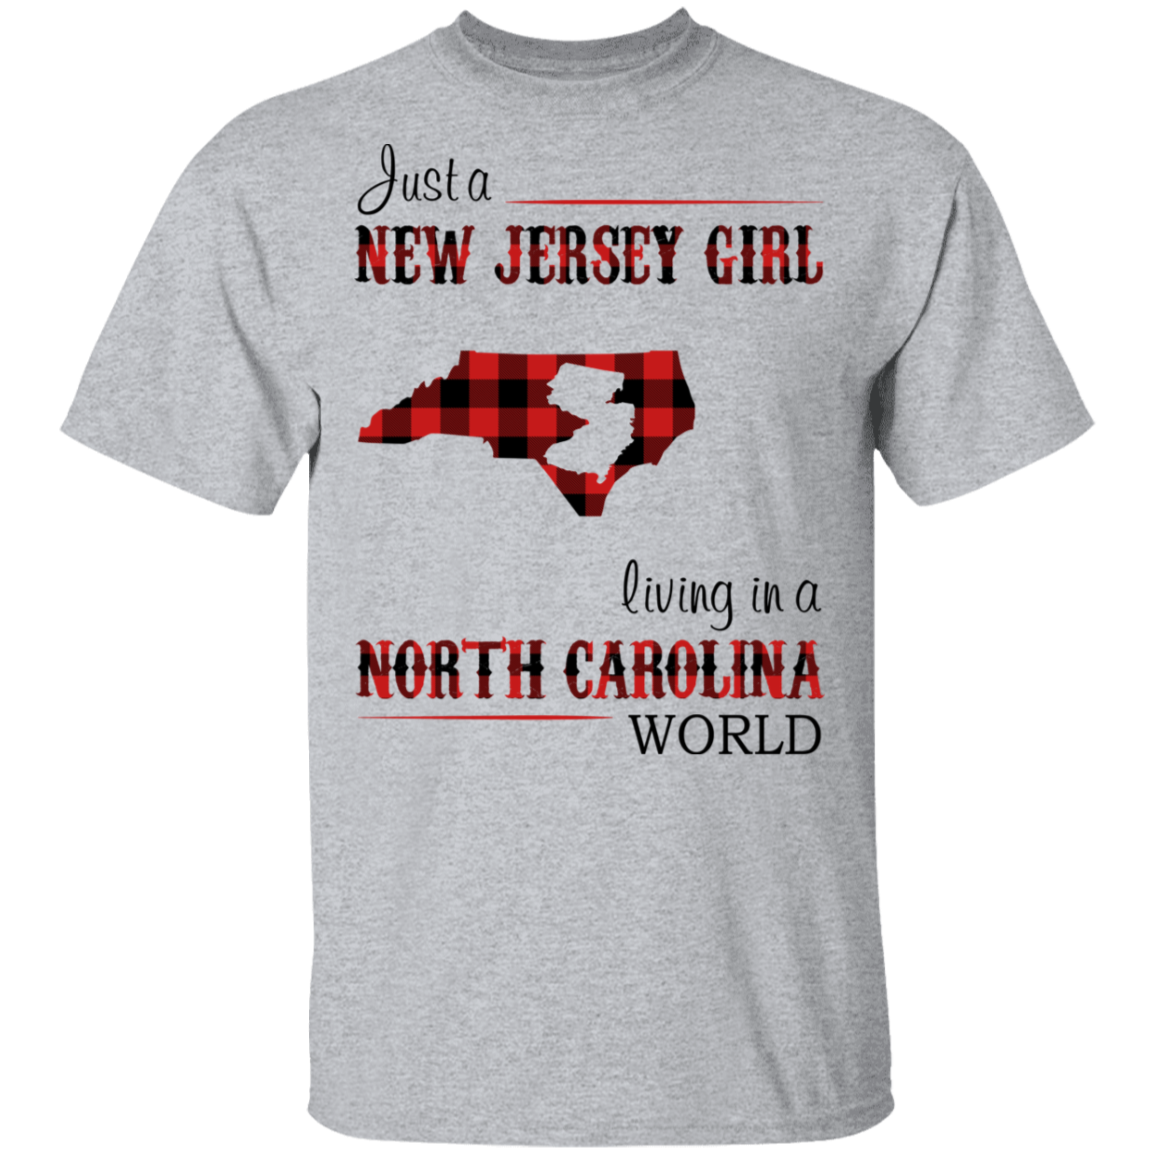 JUST A NEW JERSEY GIRL LIVING IN A NORTH CAROLINA WORLD